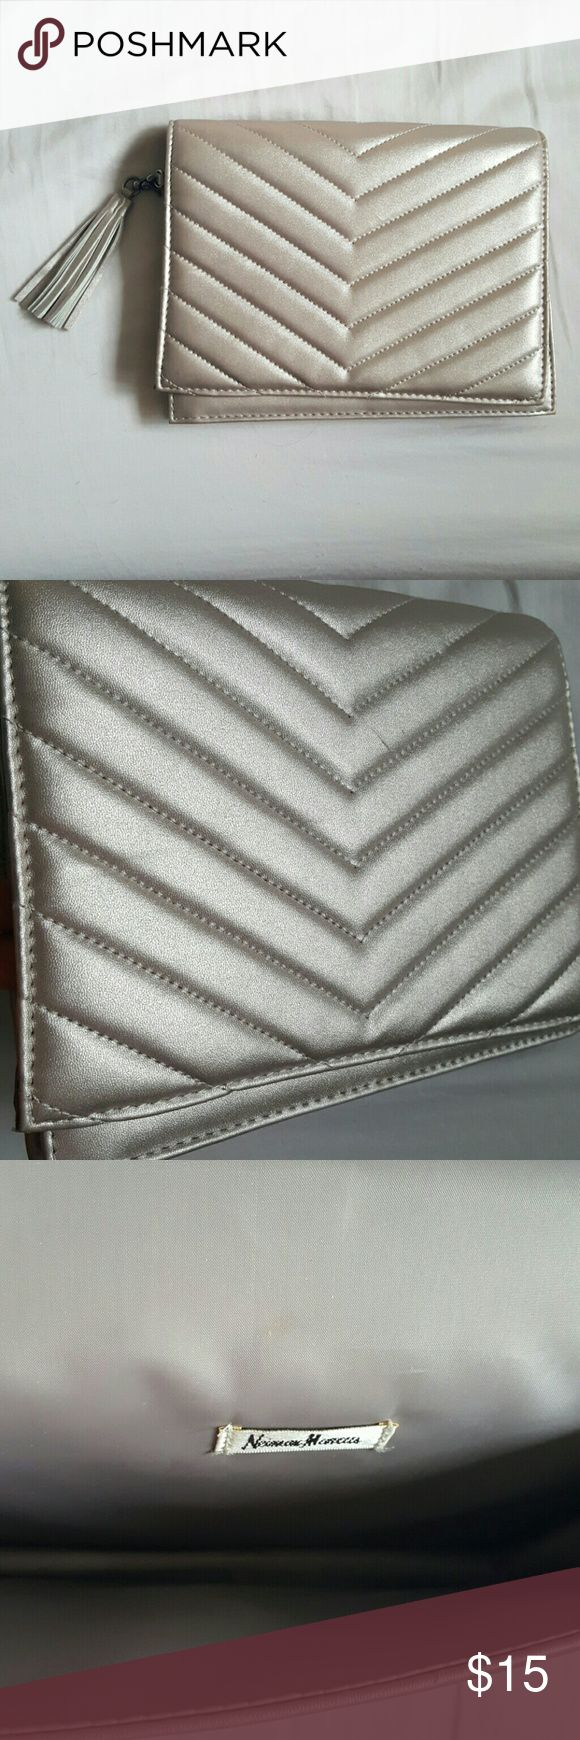 Clutch Cute silver clutch perfect for your night outs. Dress this up or dress it down. Neiman Marcus Bags Clutches & Wristlets